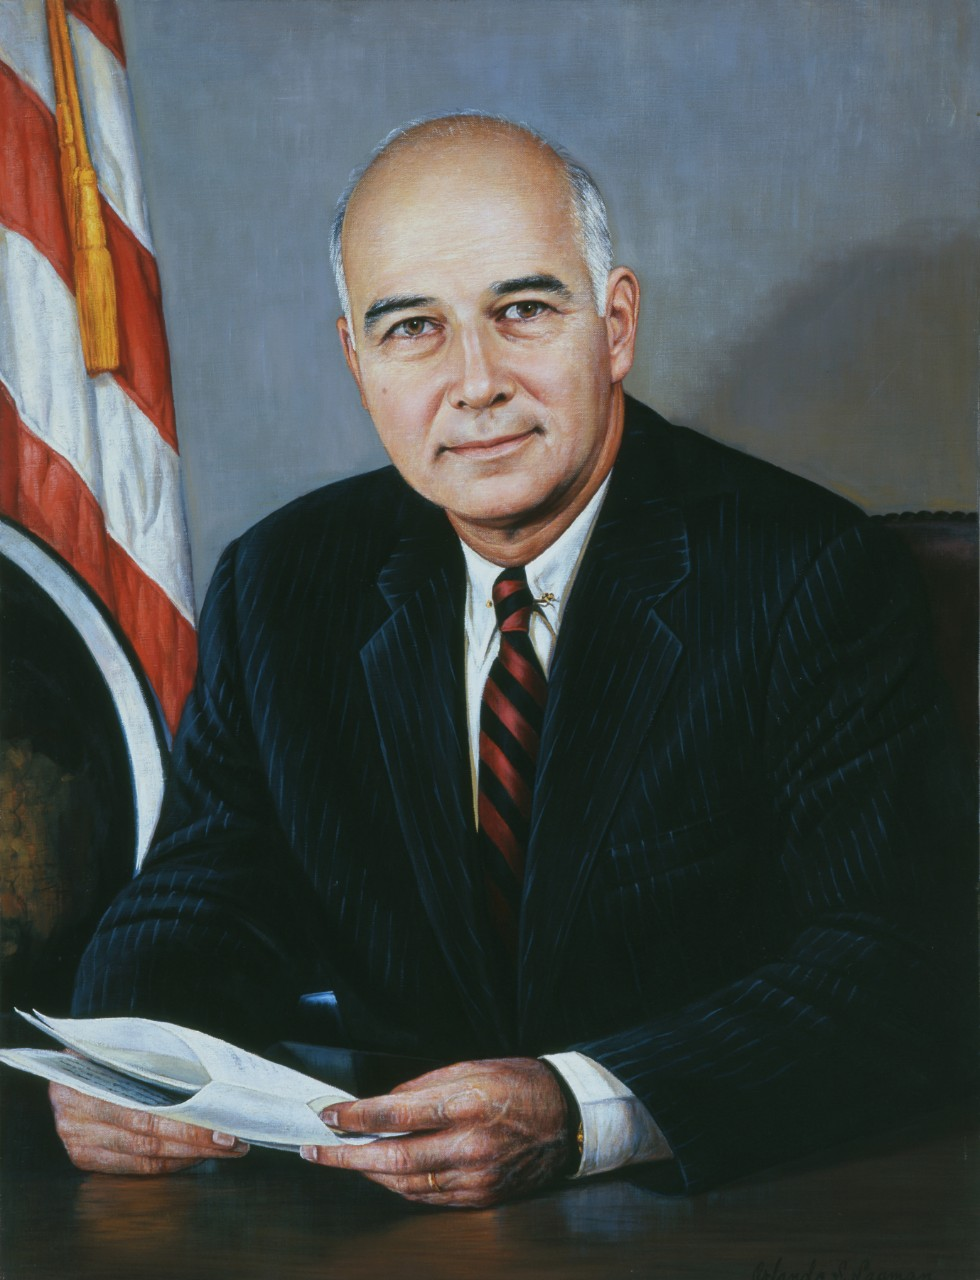 Portrait of Secretary of the Navy Paul Robert Ignatius